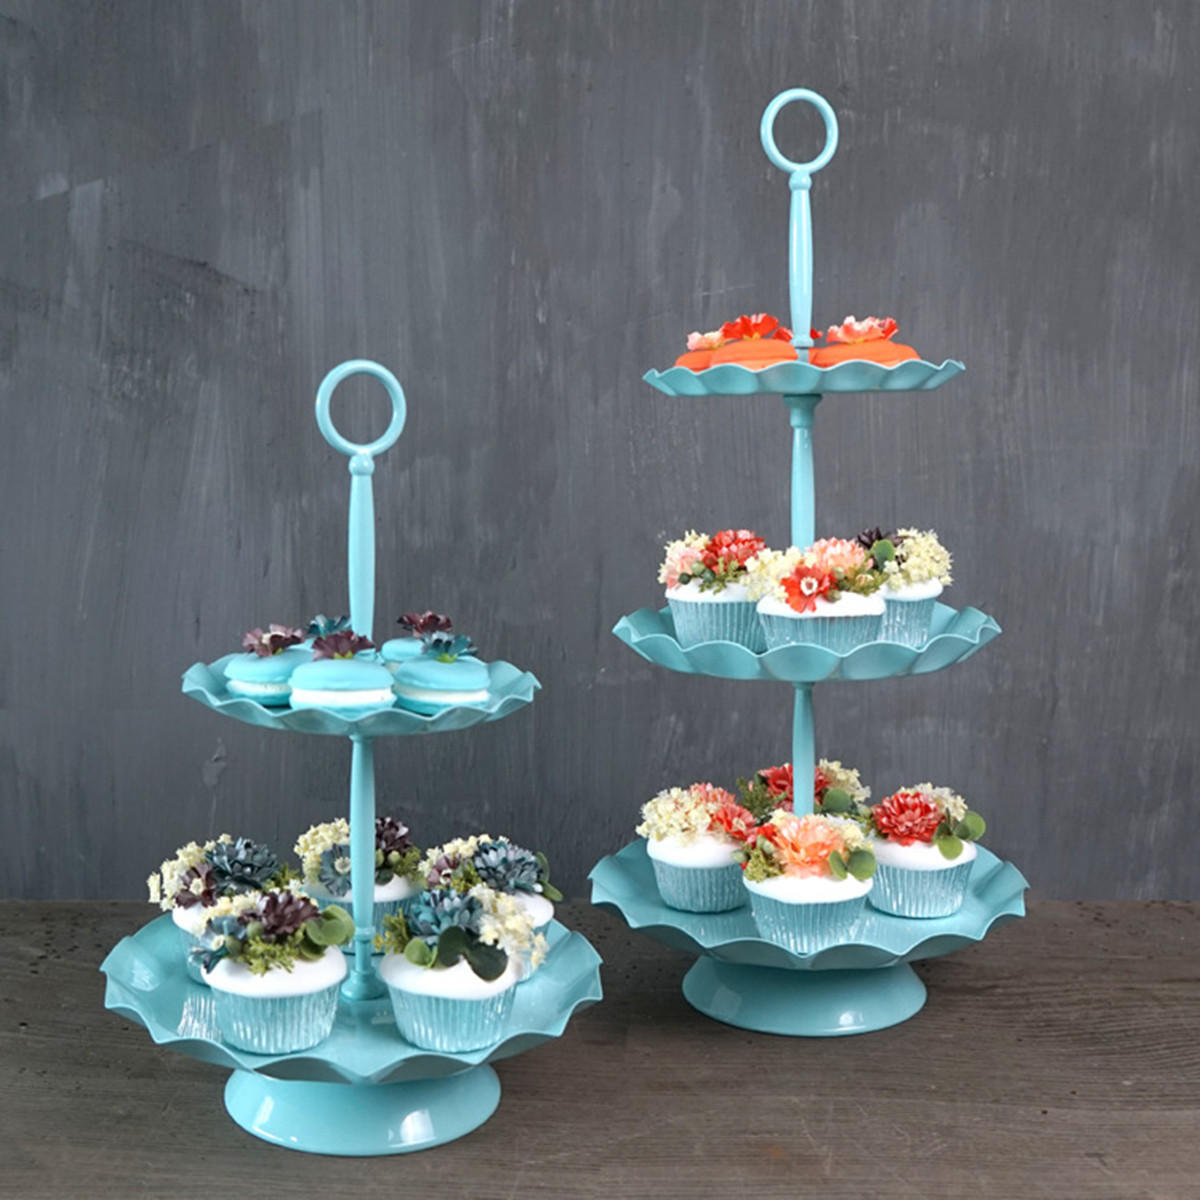 2 / 3 Ters Blue Cake Holder Cupcake Stand Birthday Wedding Party Display Holder Decorations from Banggood